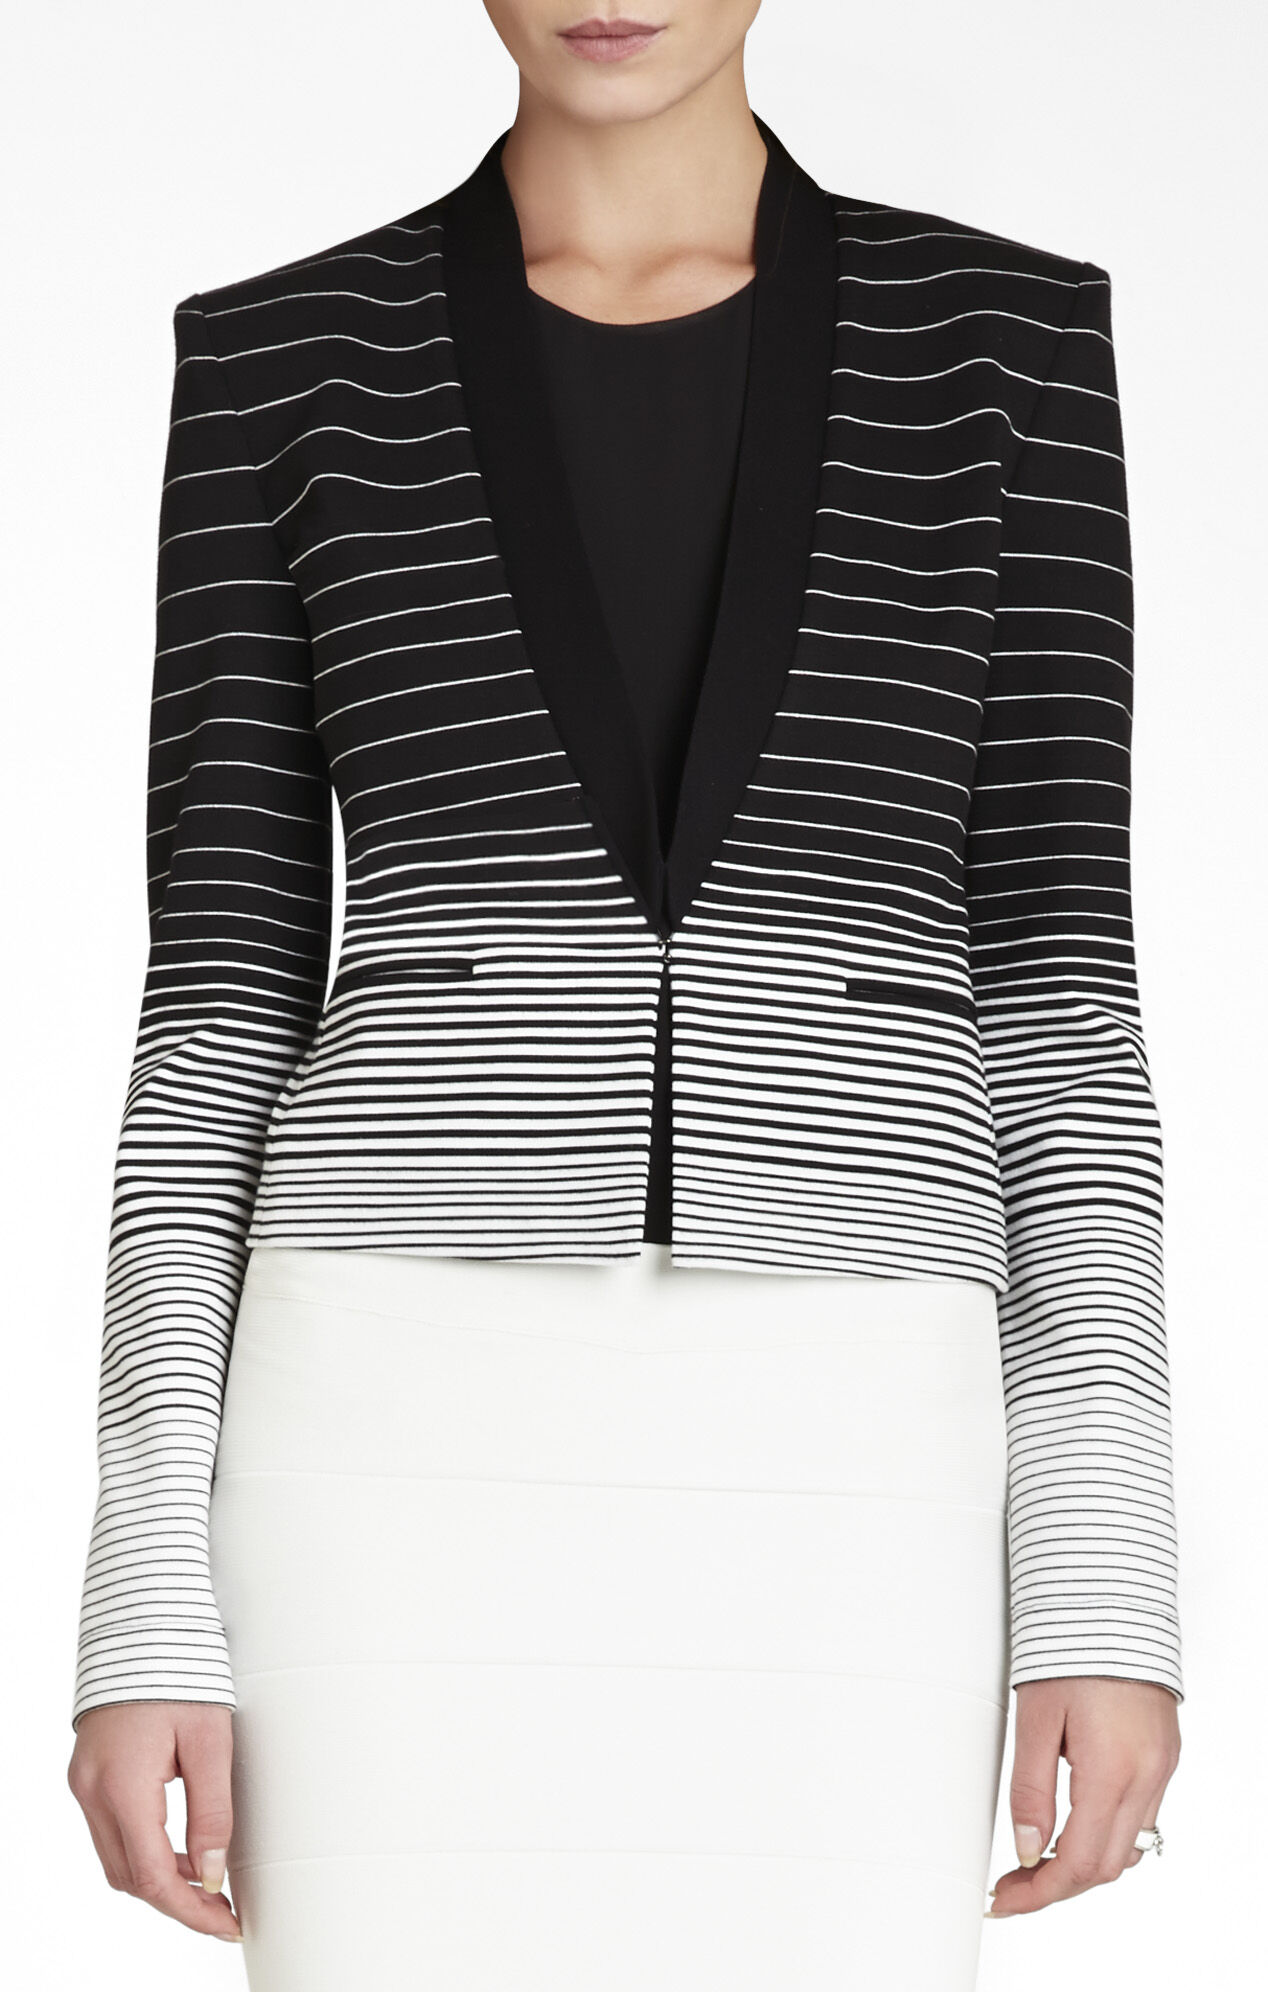 Guy Striped Tuxedo Blazer